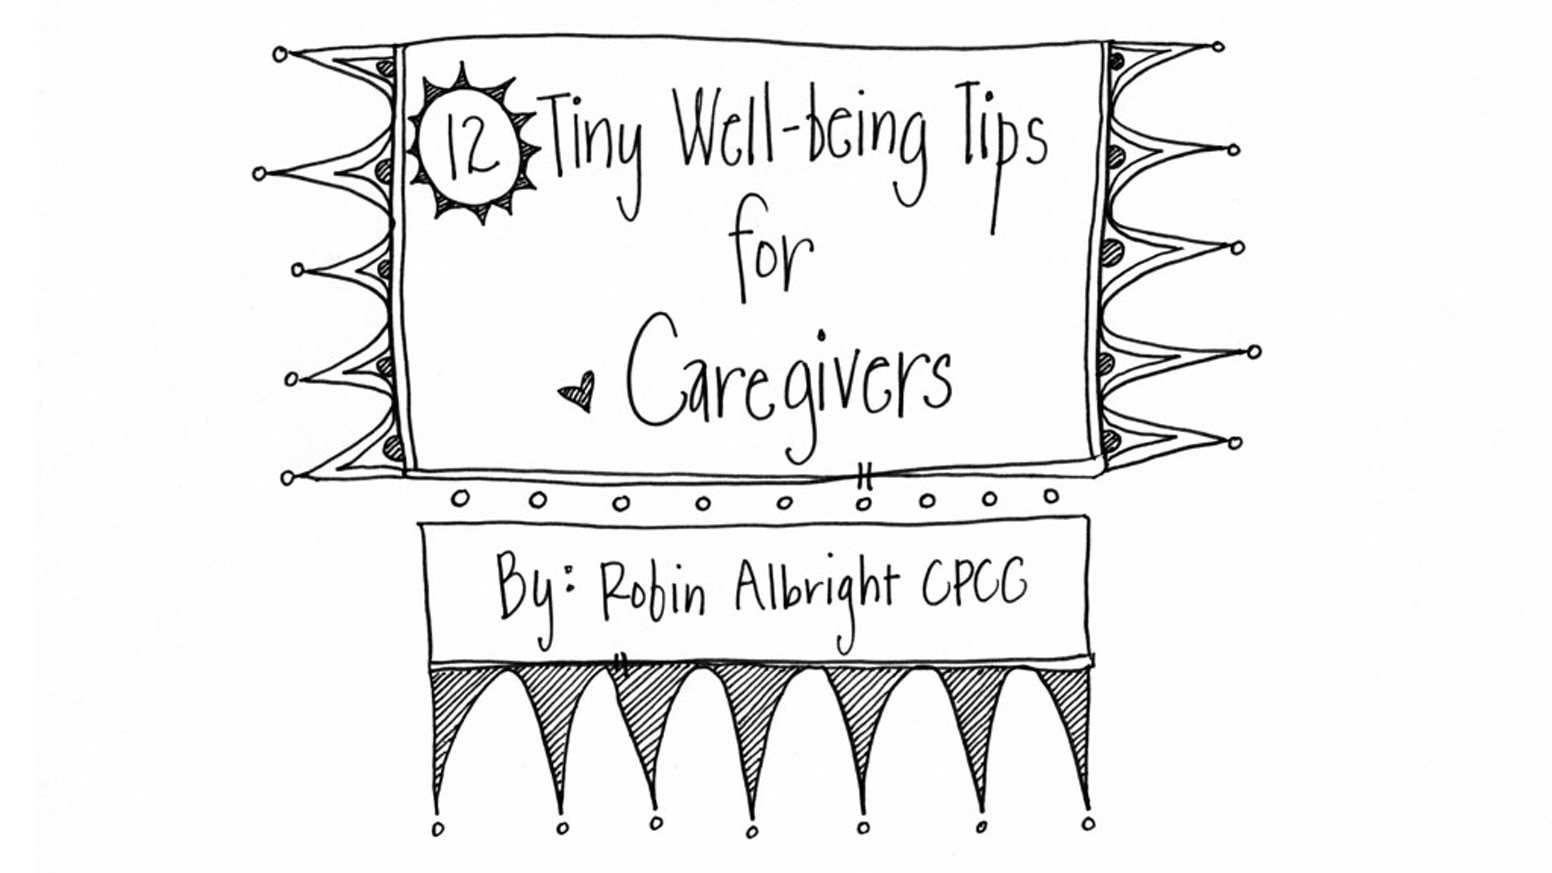 12 Tiny Well-being Tips for Caregivers: A Workbook by